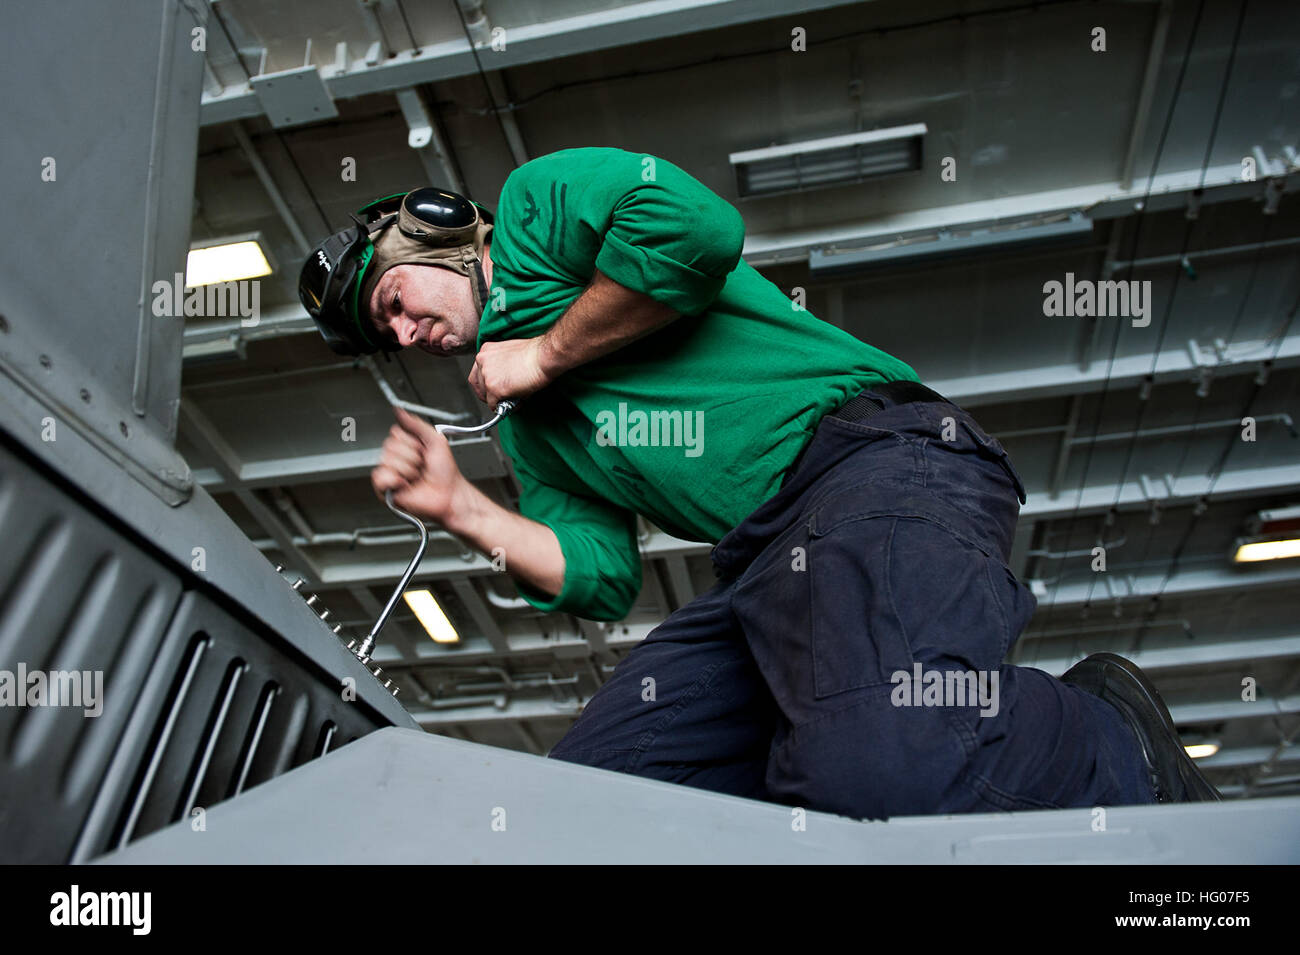 111019-N-BT887-028 ARABIAN SEA (Oct. 19, 2011) Aviation Structural Mechanic 2nd Class Craig Heady removes a panel - Stock Image